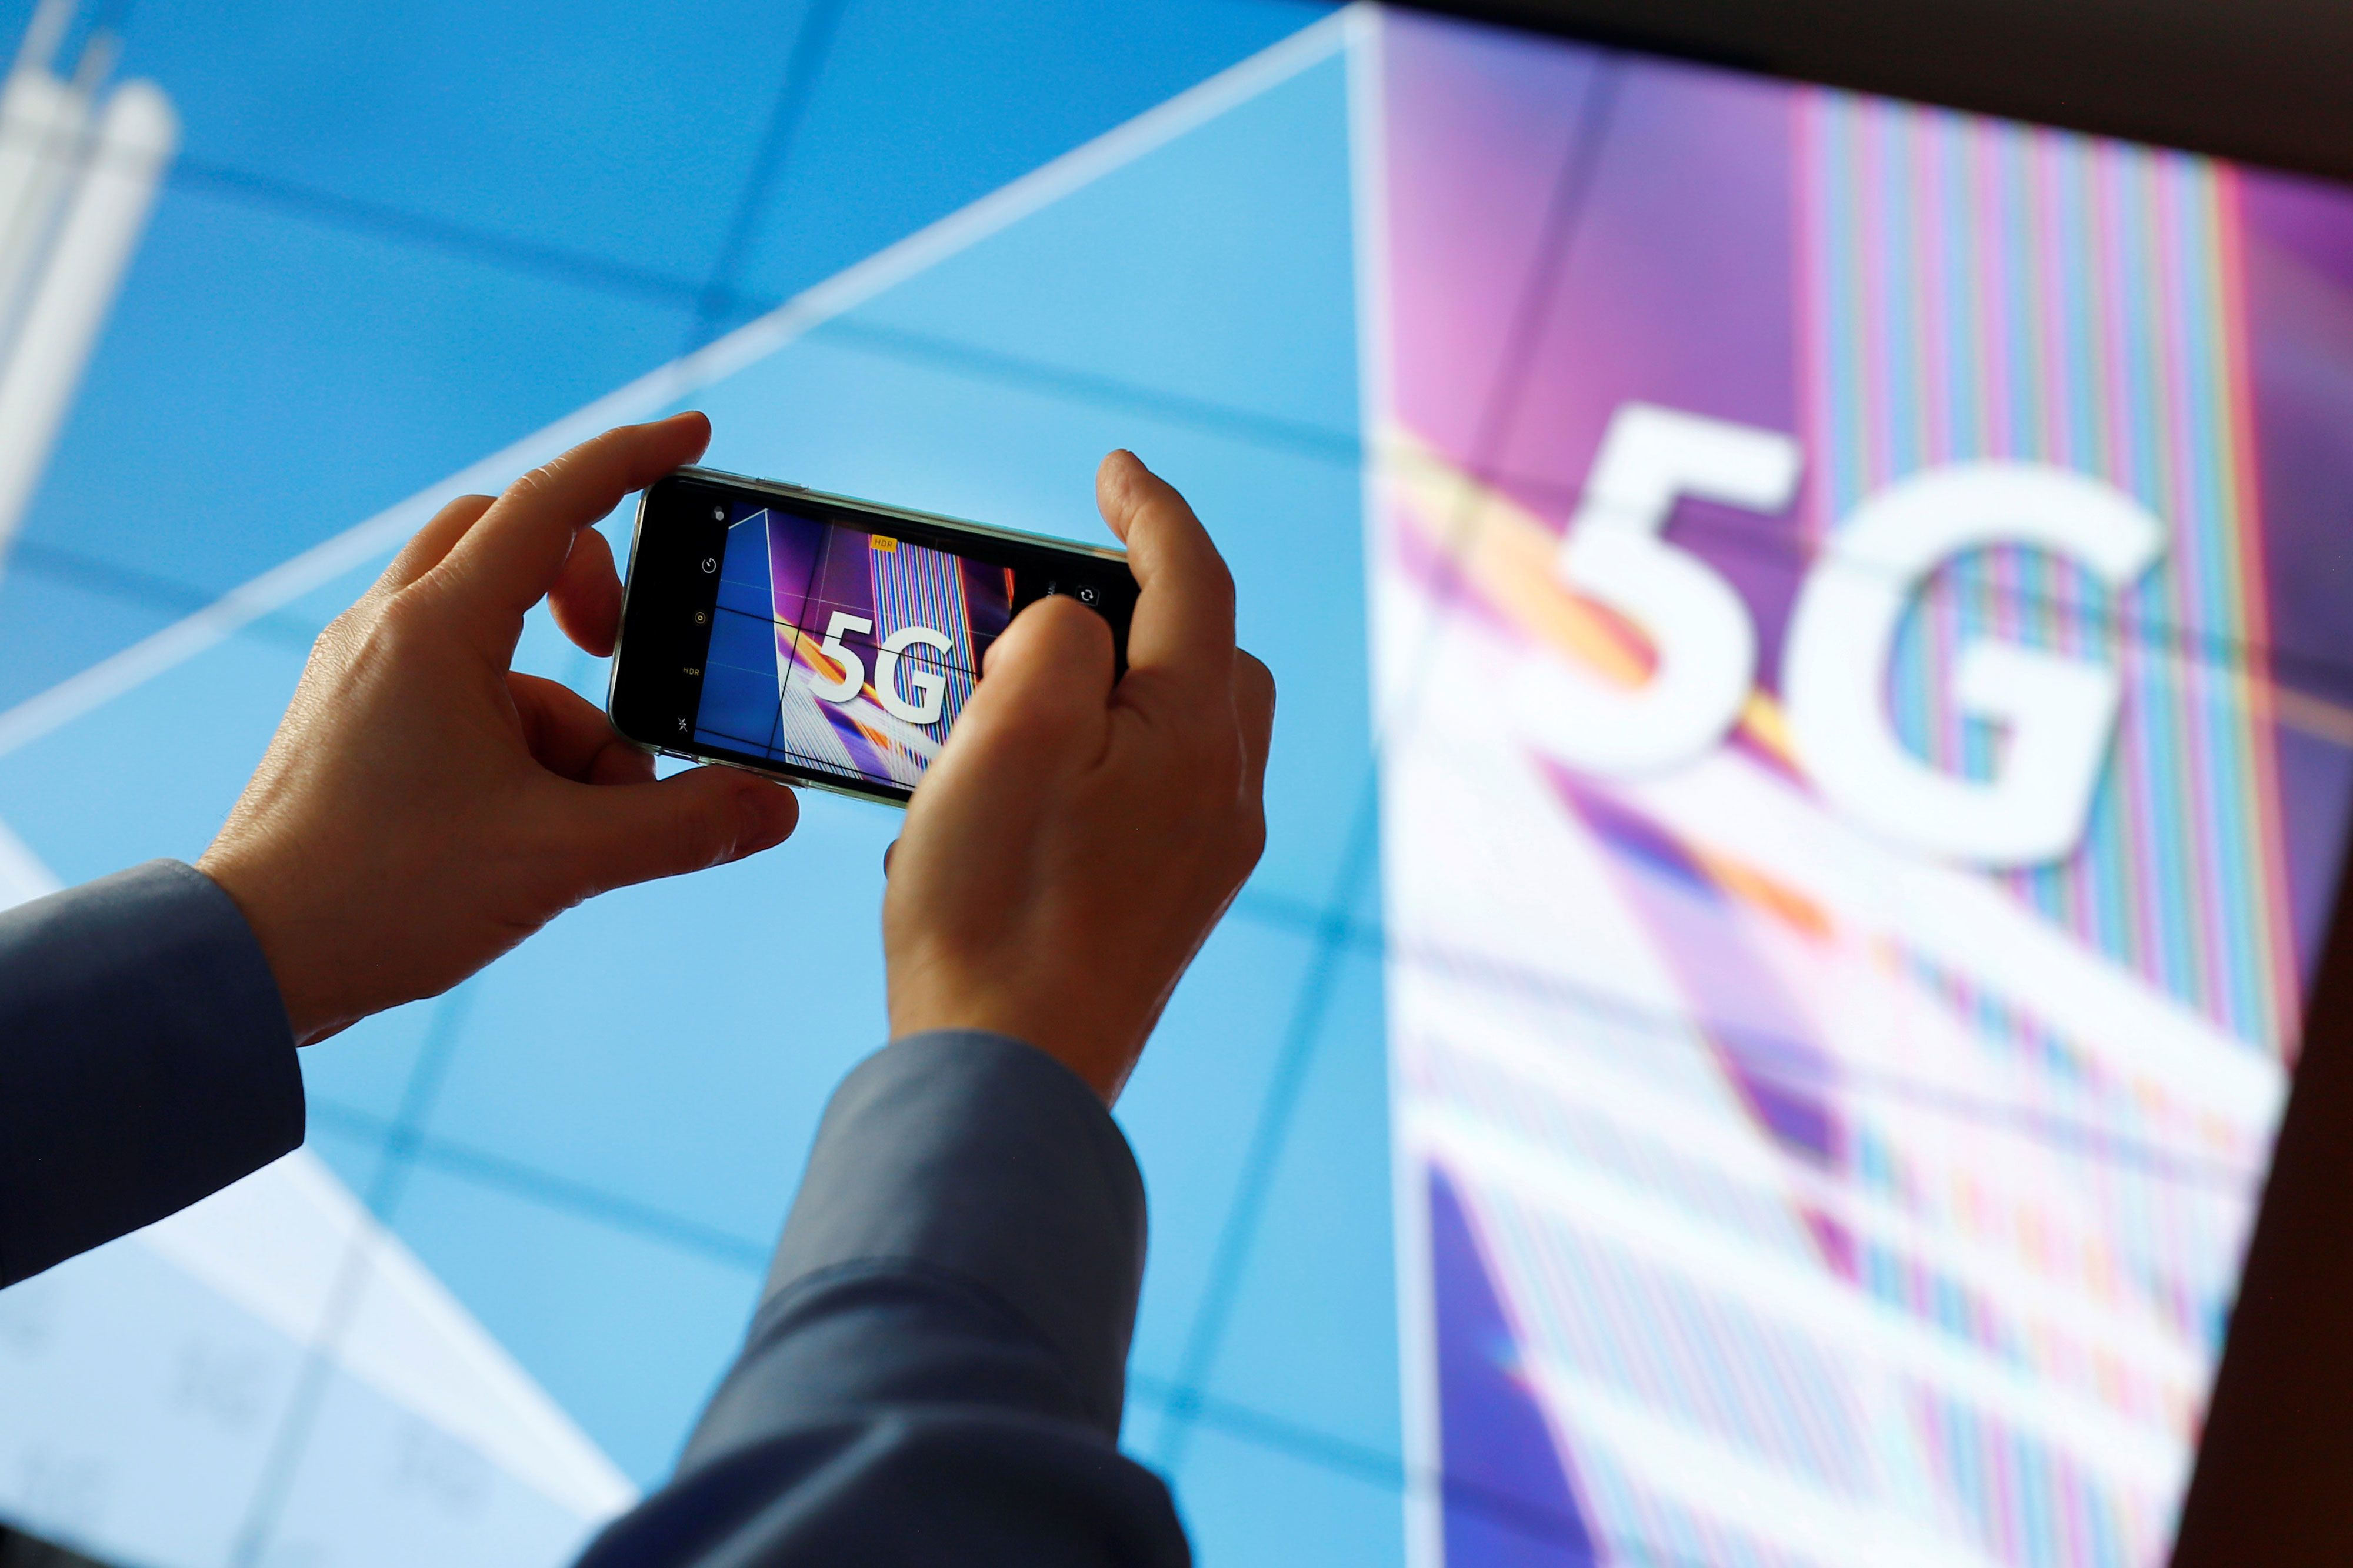 Jim Cramer revisits his top stock picks for the 5G rollout